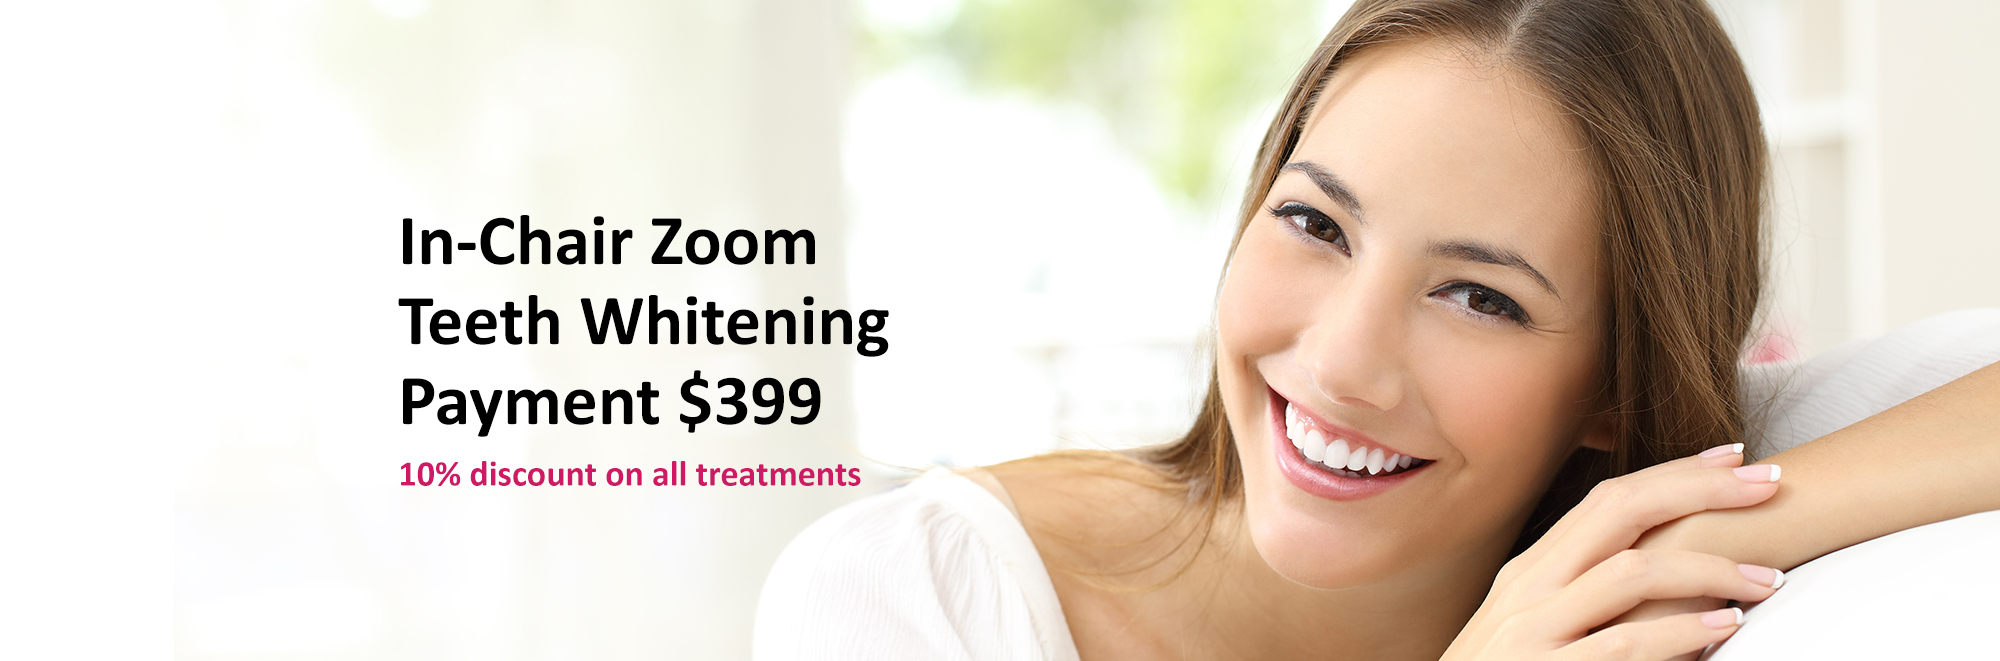 new-teeth-whitening